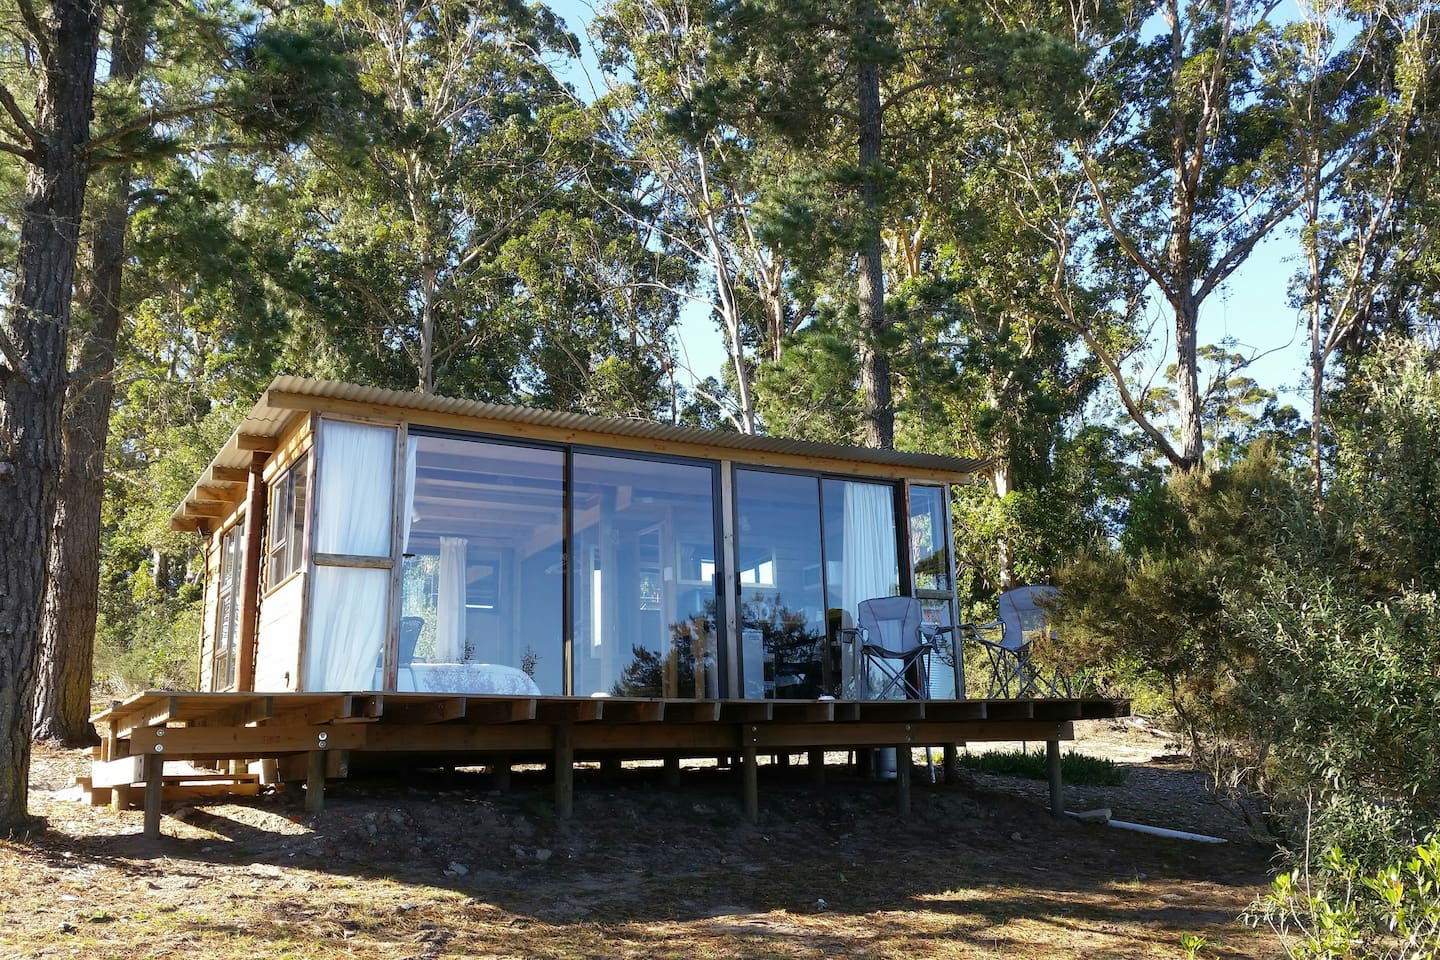 The cabin has a glass frontage to allow you to enjoy the beautiful view of the lake.